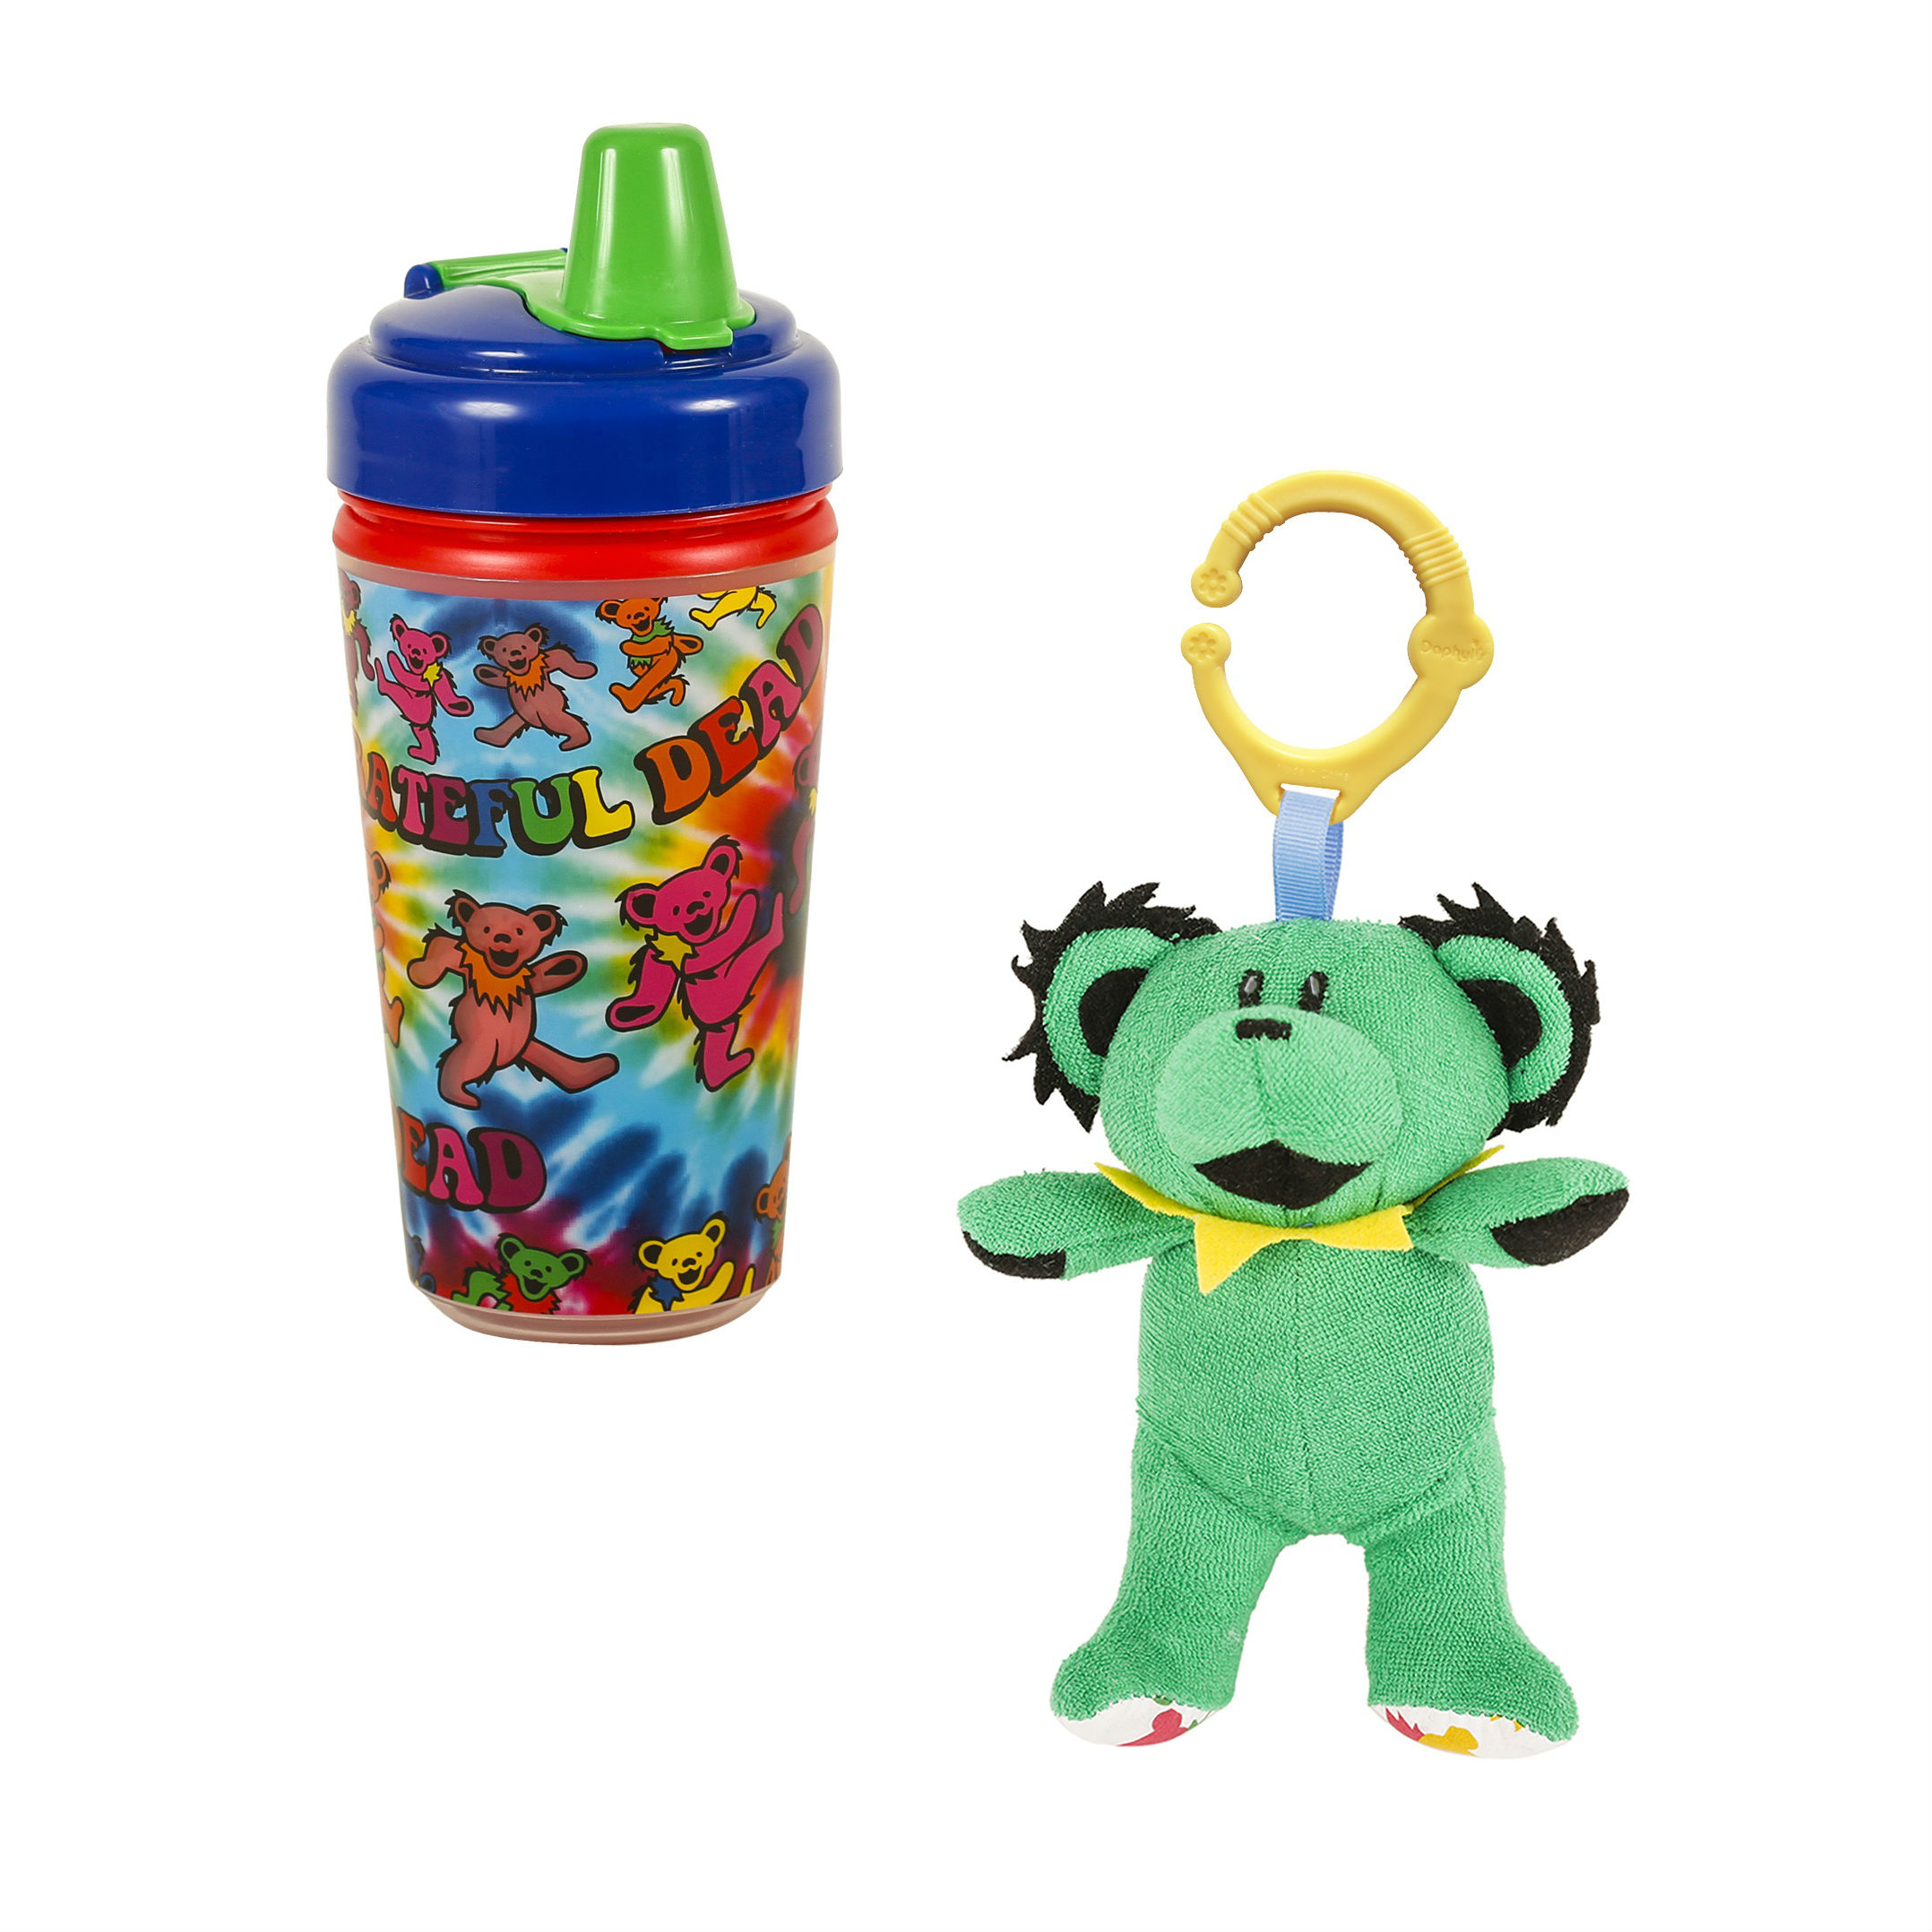 Grateful Dead or Pink Floyd Sippy Cup  amp  Plush Toy Baby Bundle 5787730